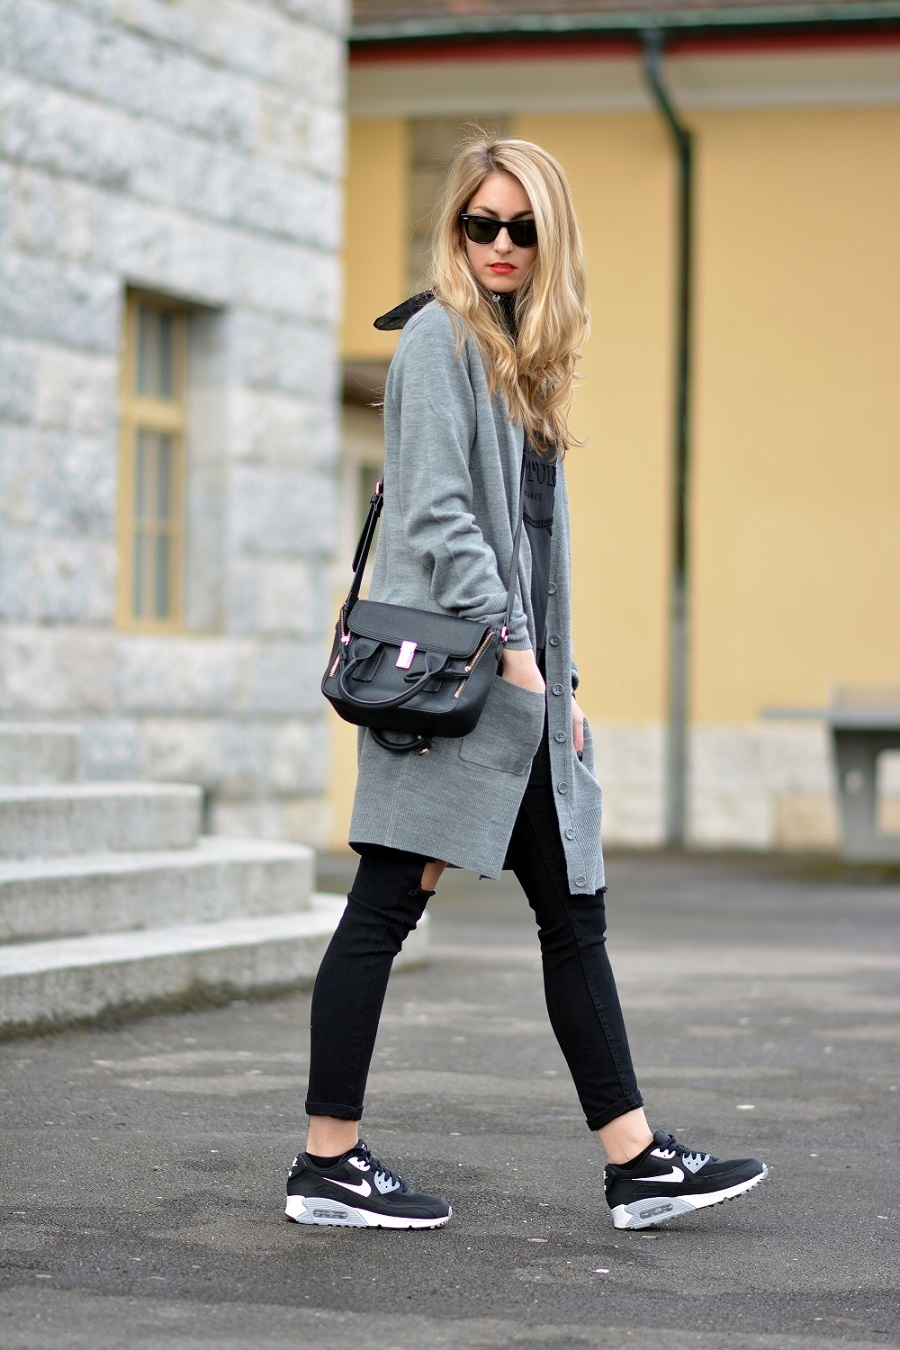 Can U Wear Tennis Shoes With Skinny Jeans U2013 Super Jeans In Dieser Saison